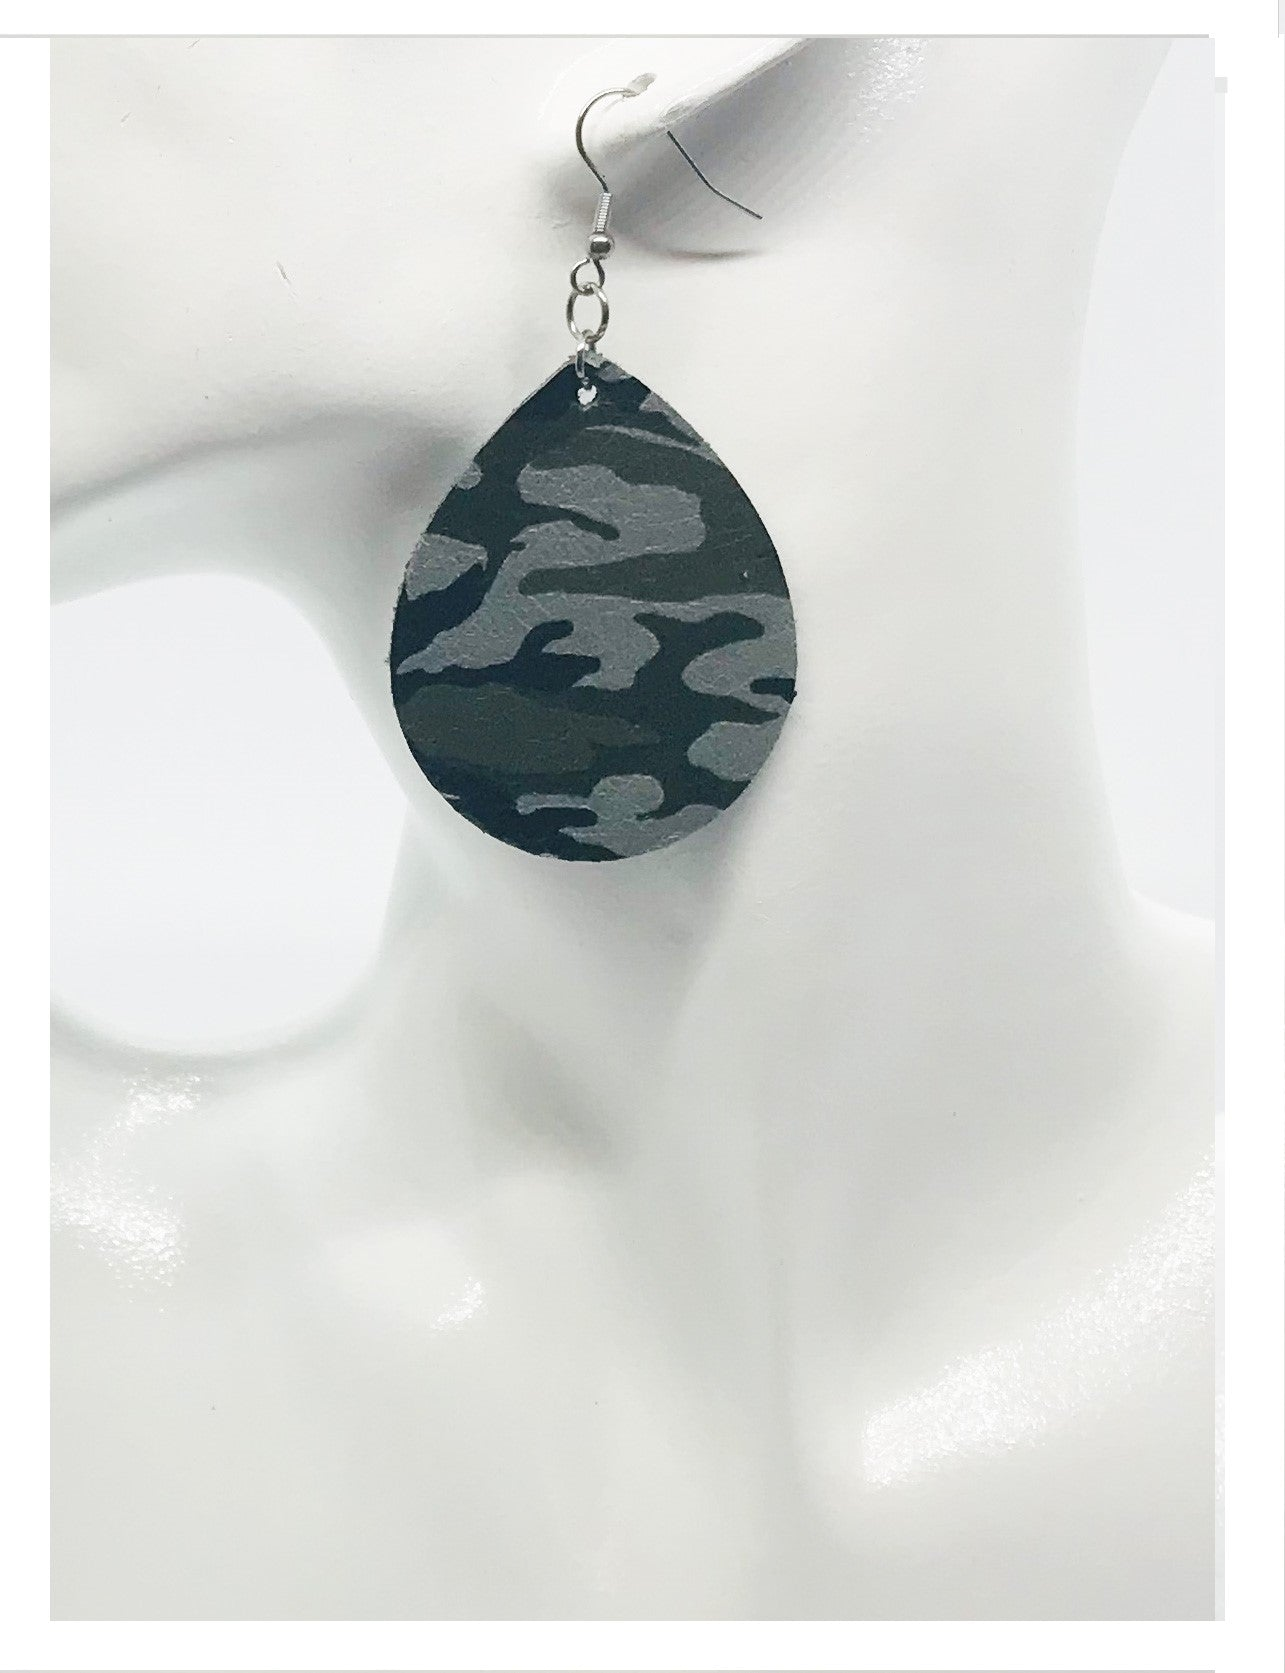 Jungle Gray Mini Camo Pattern Leather Earrings - E19-047